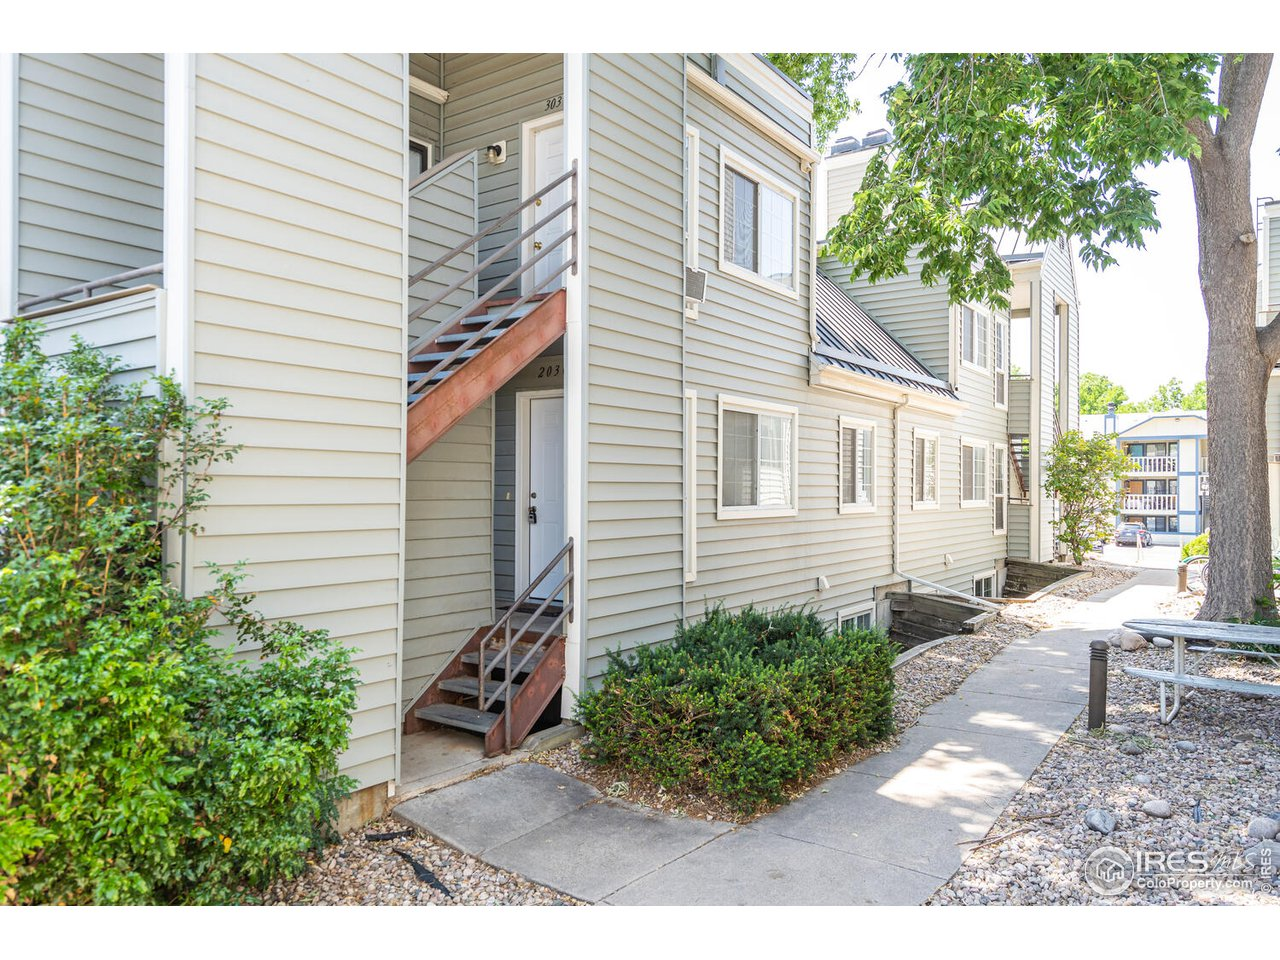 1301 University Ave C203, Fort Collins CO 80521